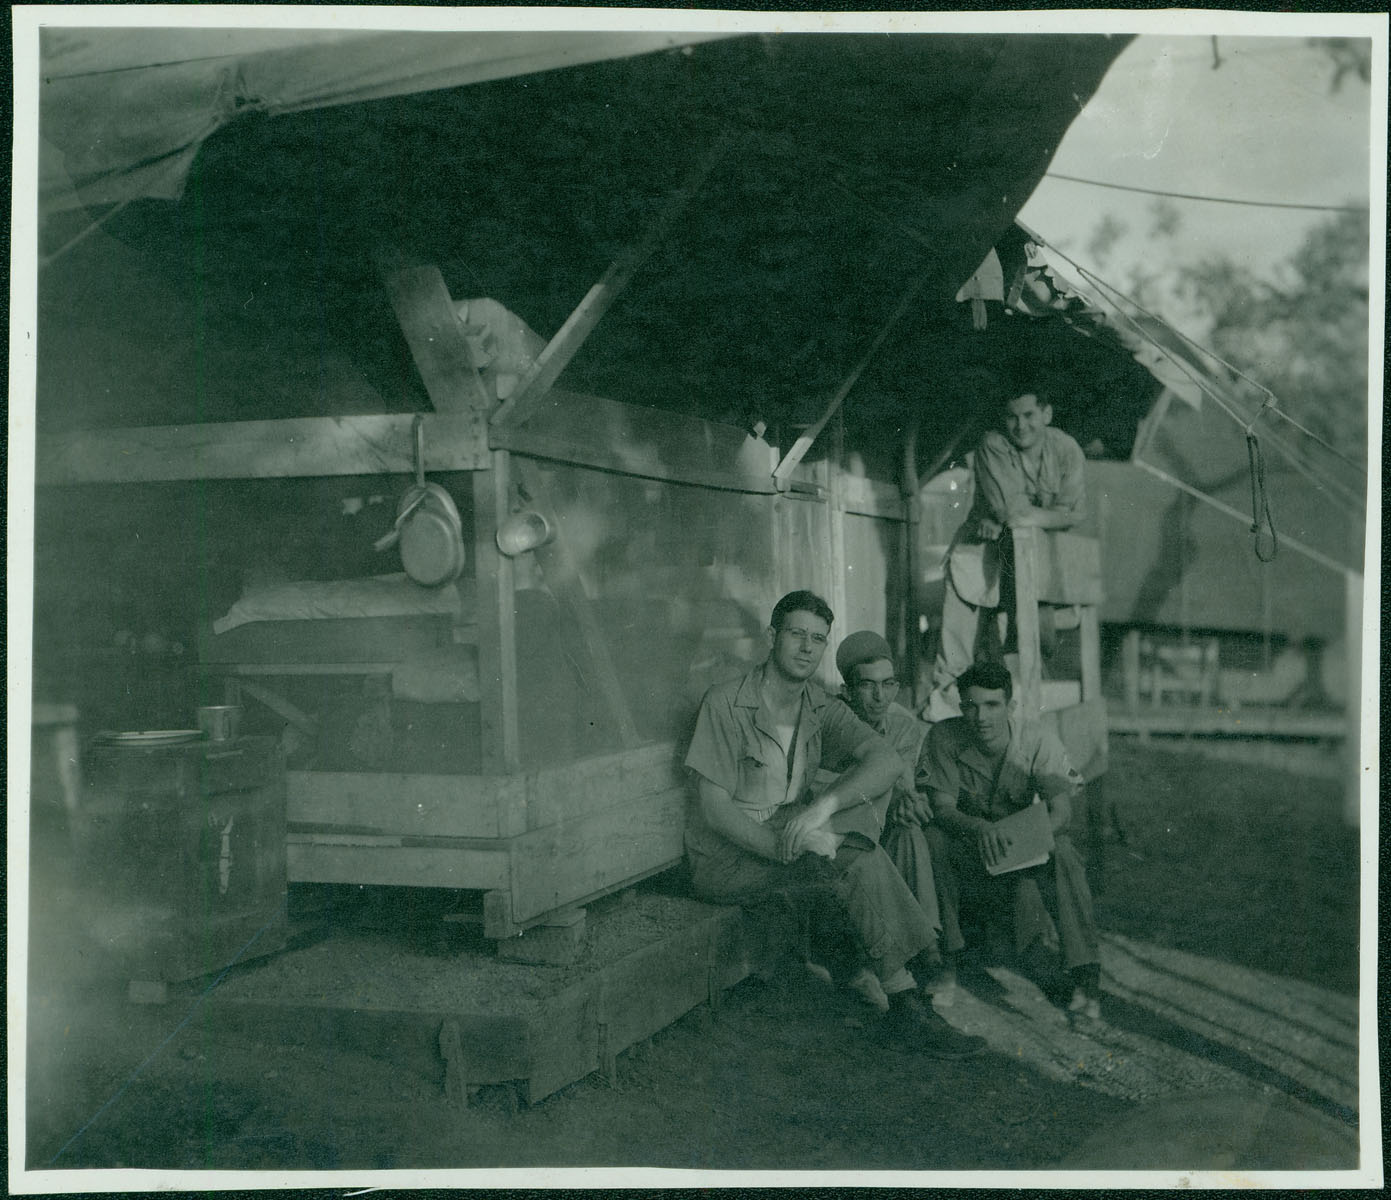 Merchant and friends outside living quarters [RG5841-9-8]